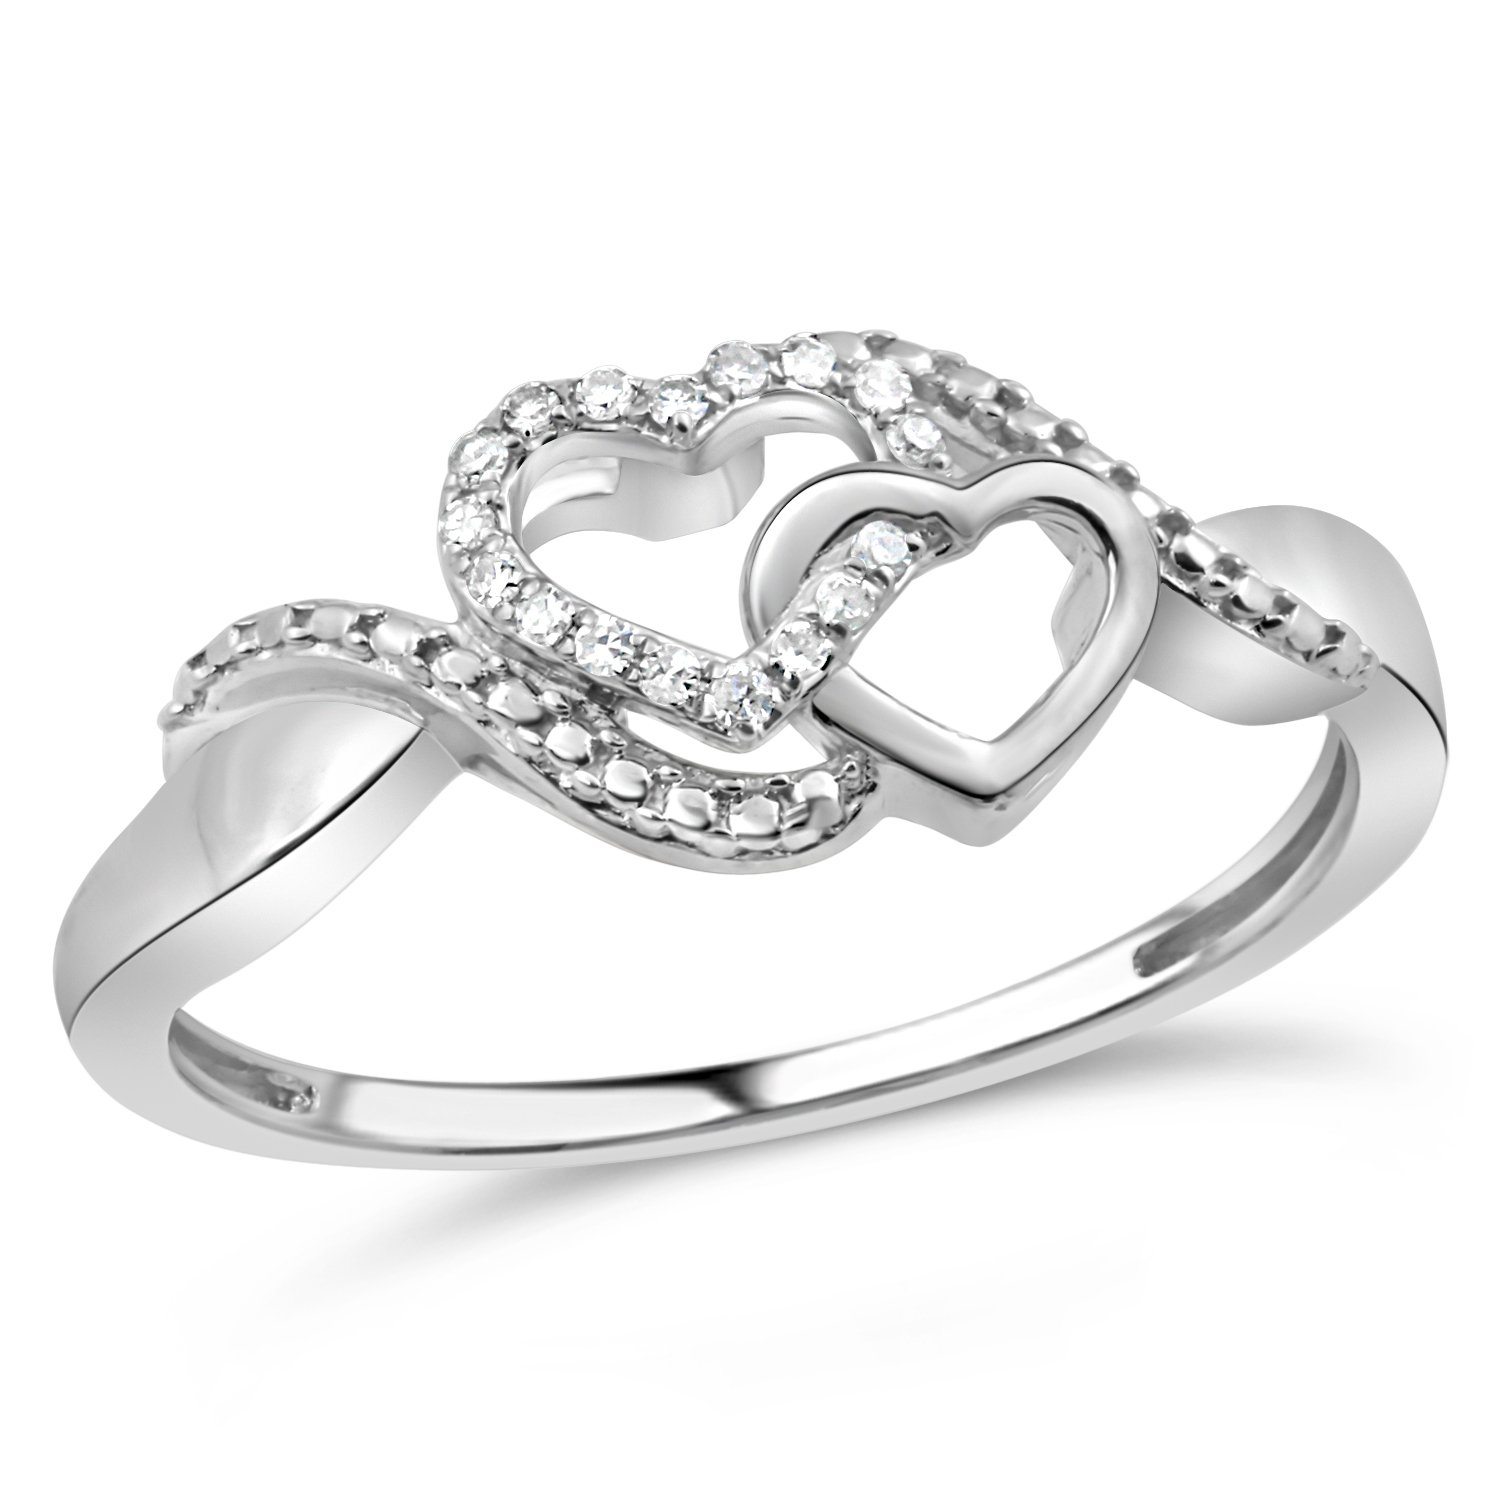 Diamond Promise Ring in Rhodium Plated Sterling Silver 1/20 cttw